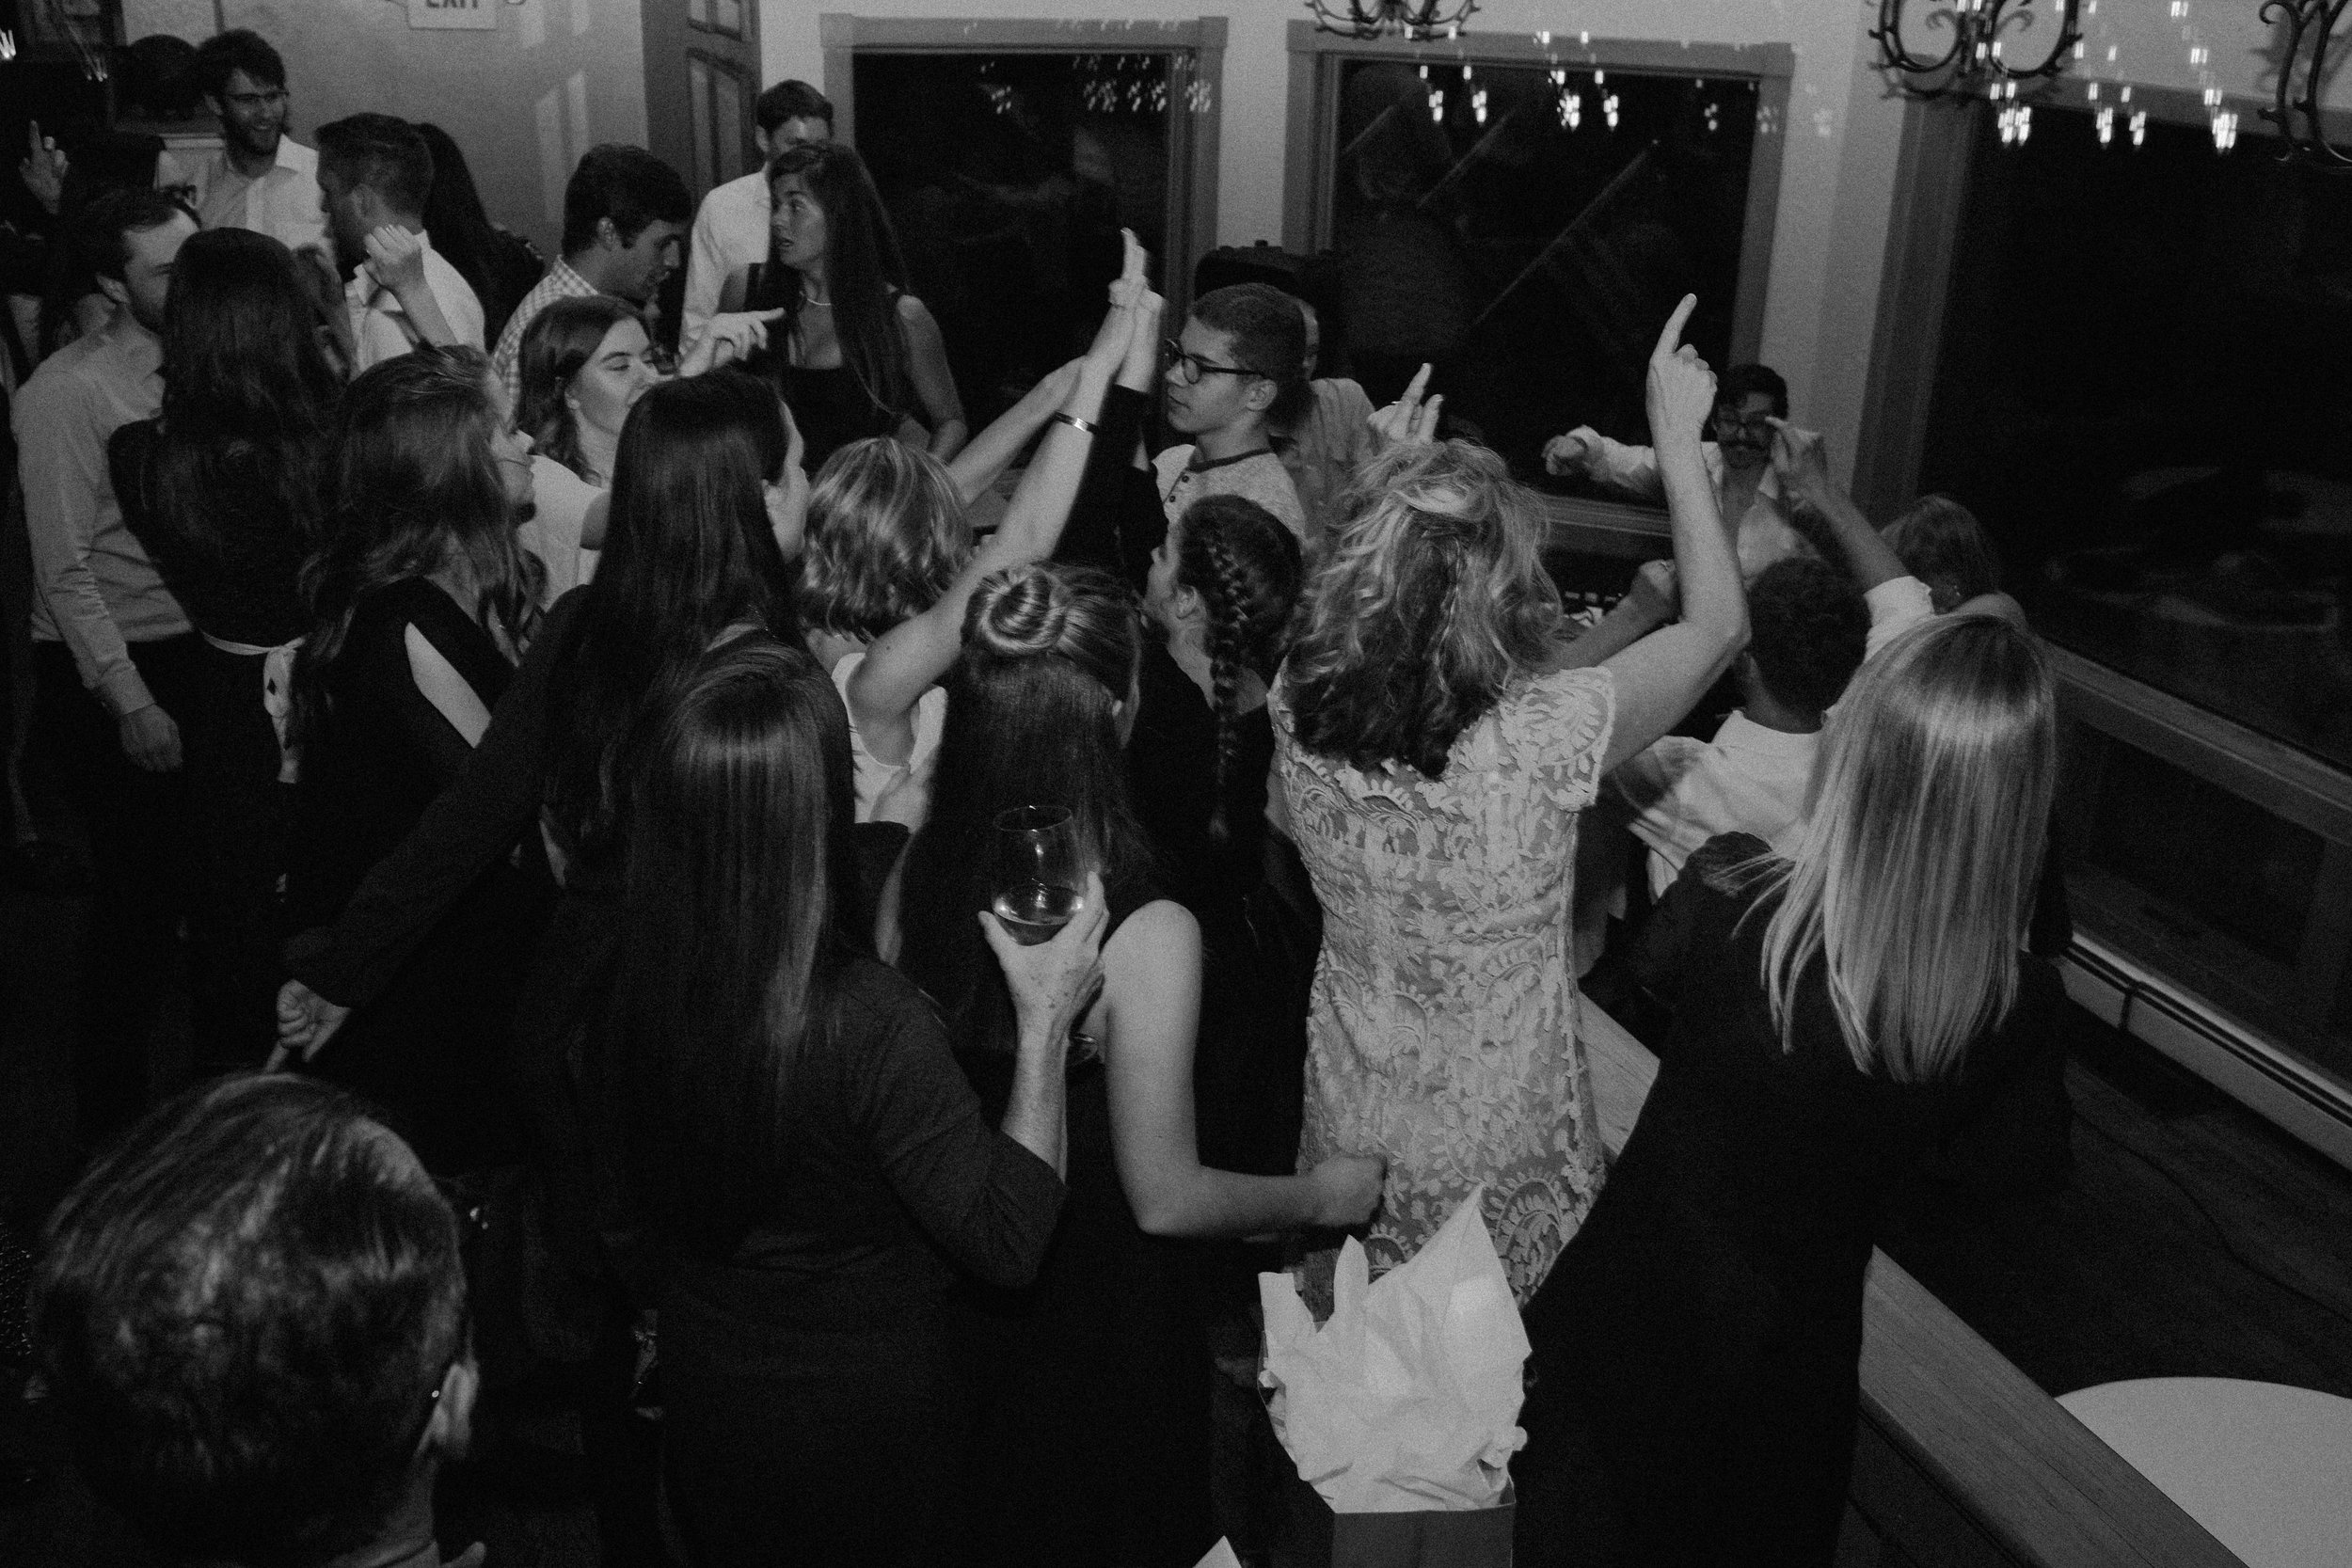 One of my favorite, most vivid memories of the reception is when Jay played  Empire State of Mind  and it seemed like everyone was groovin' and singing at the top of their lungs (or maybe that was just me...?).